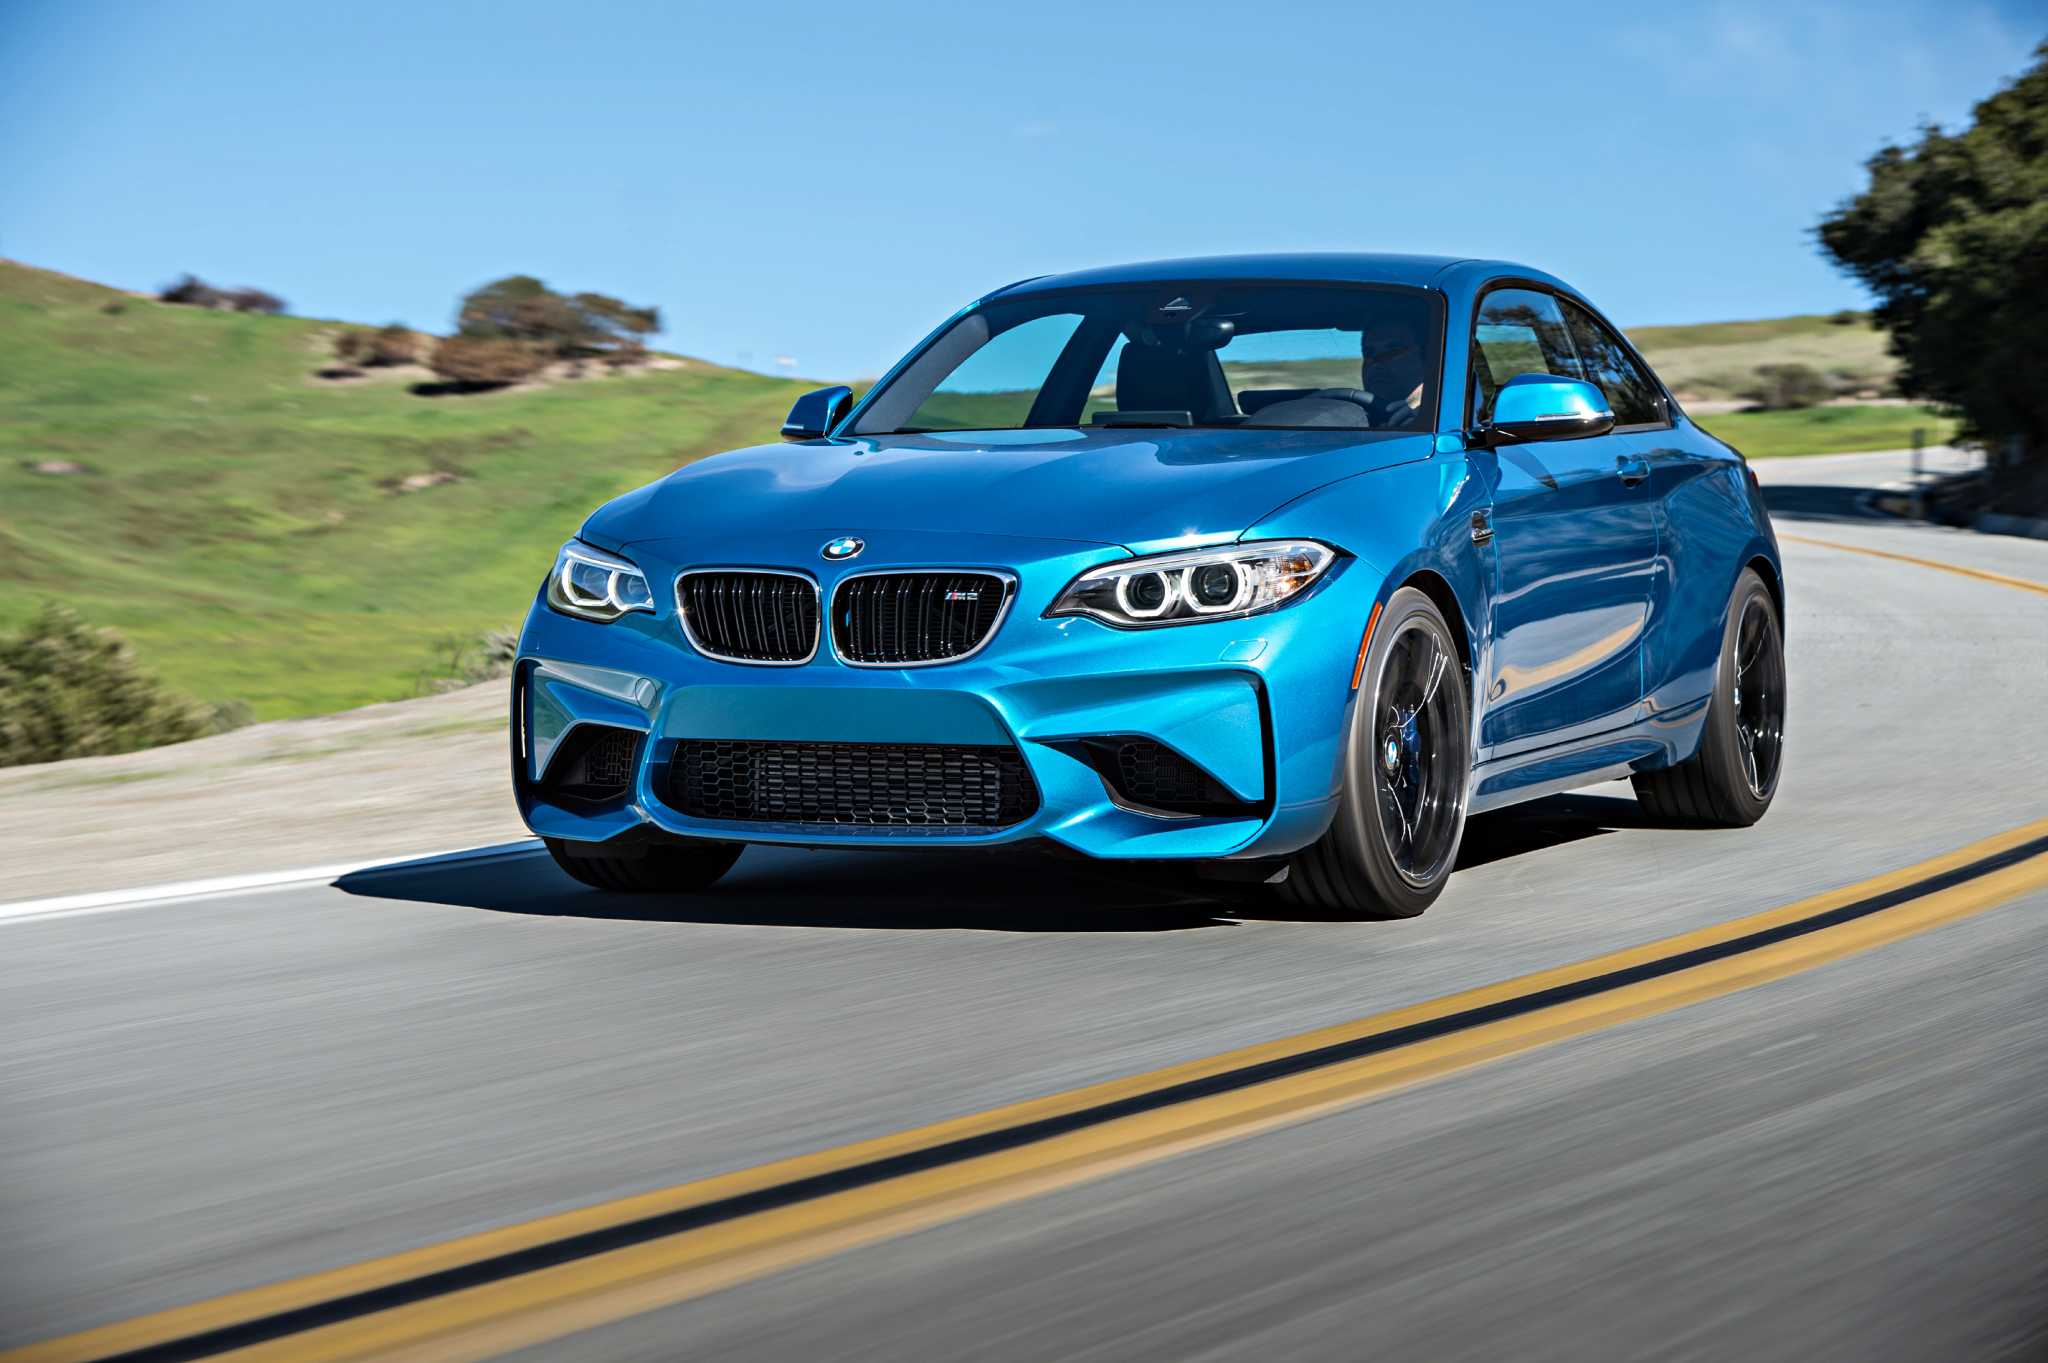 BMW's new M2 Coupe a pitch-perfect road and track machine